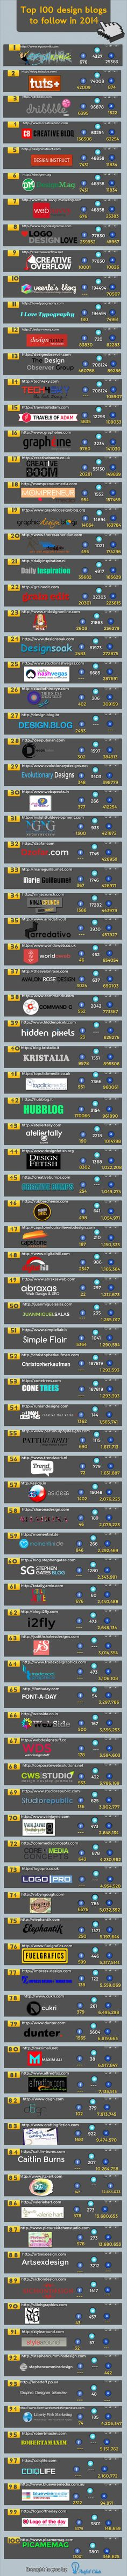 Top 100 Design Blogs To Follow In 2014 Infographic